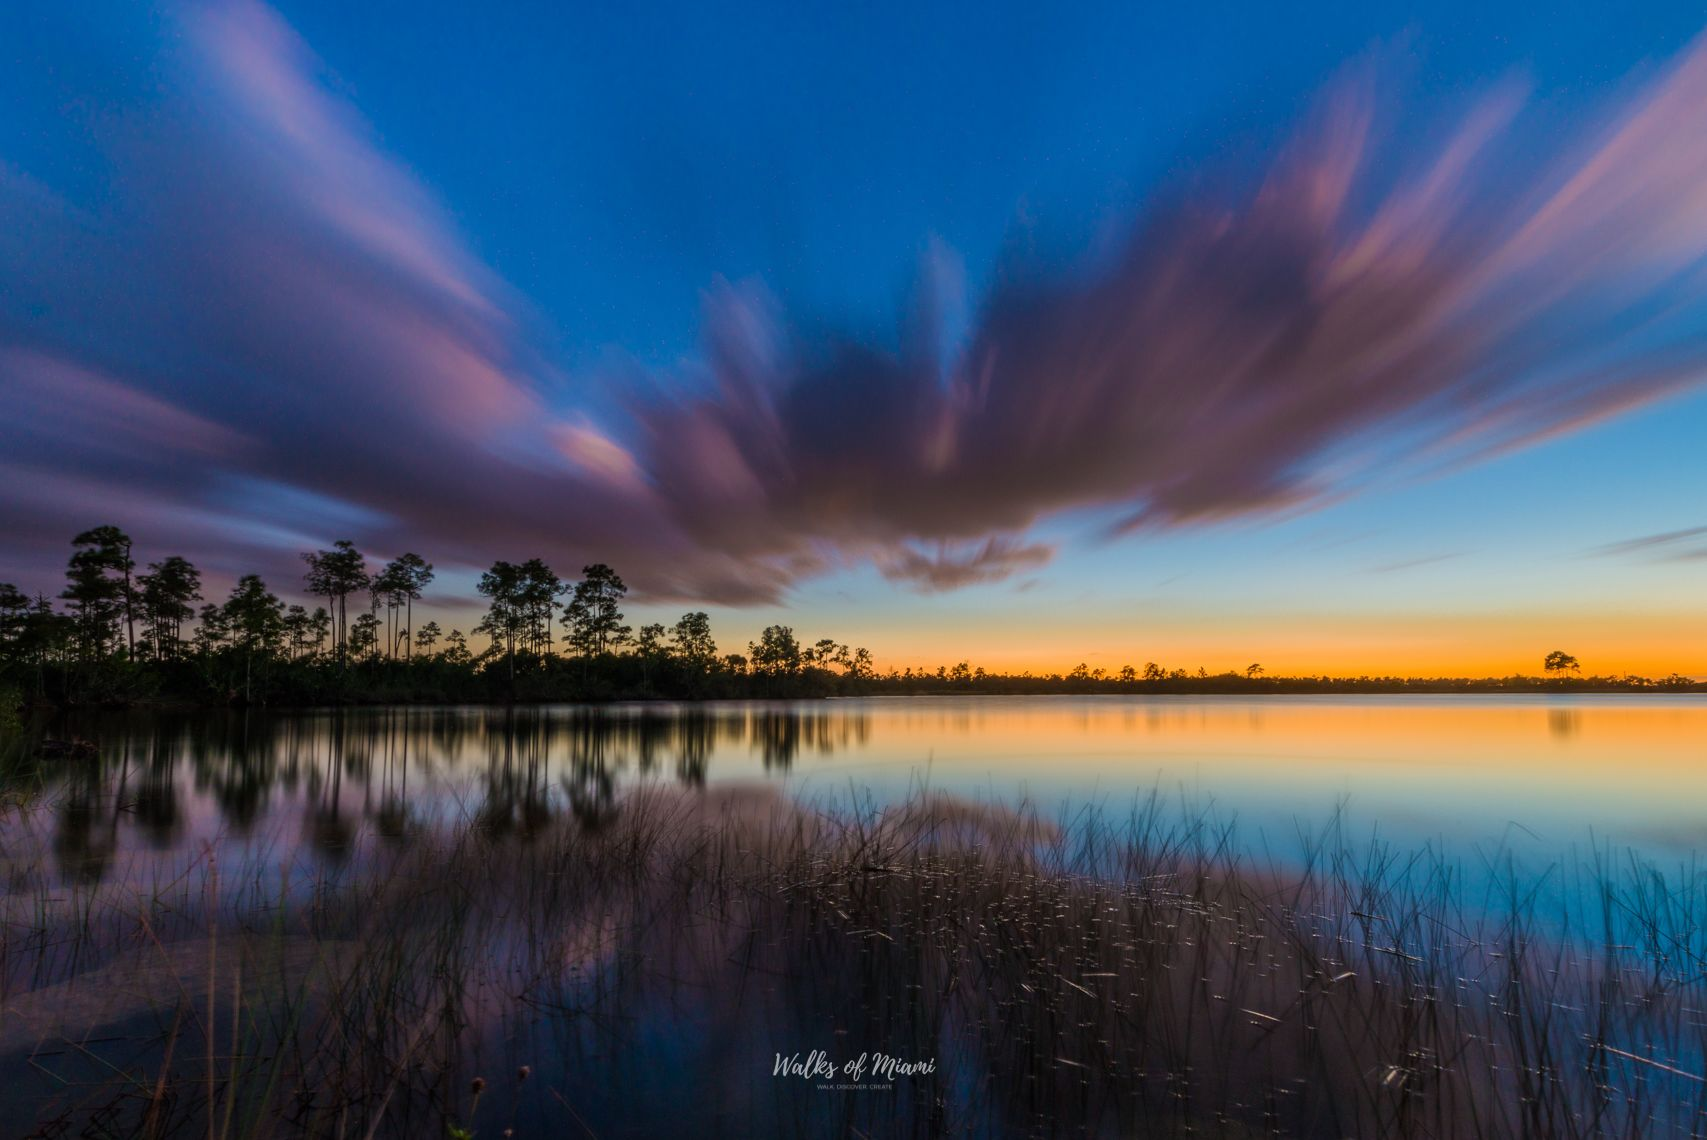 Landscape views of the sunset at Everglades National Park